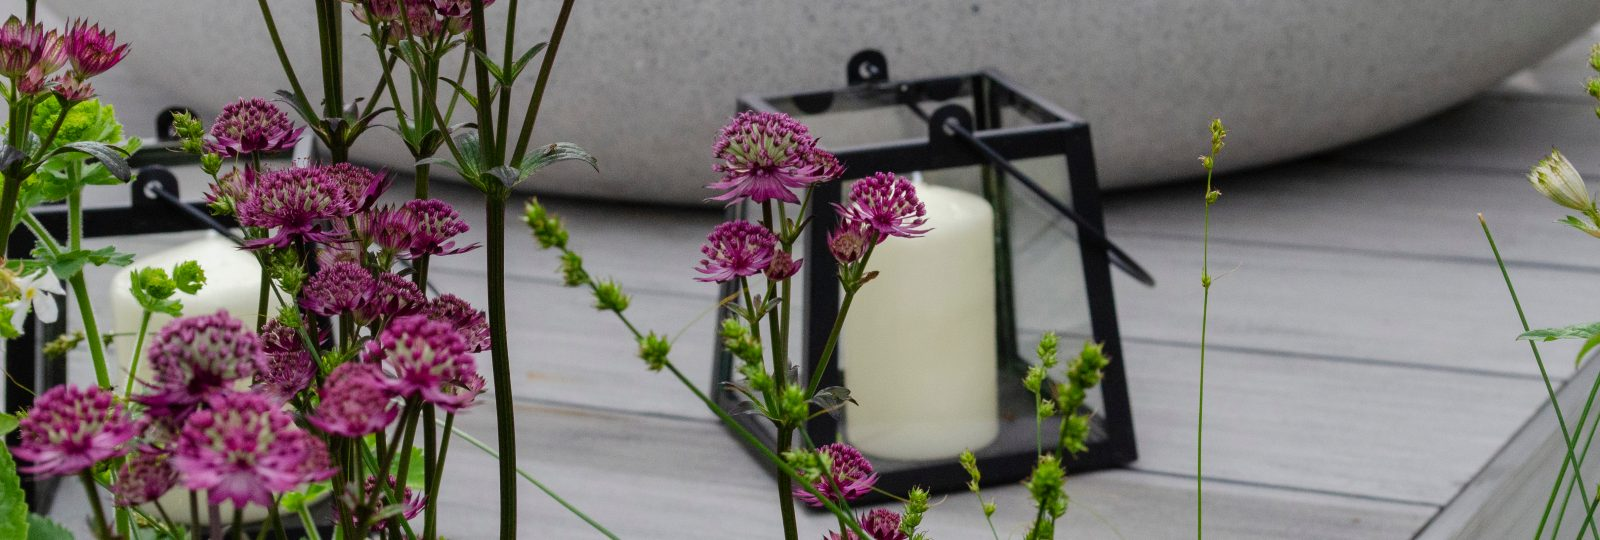 Outdoor candle on decking